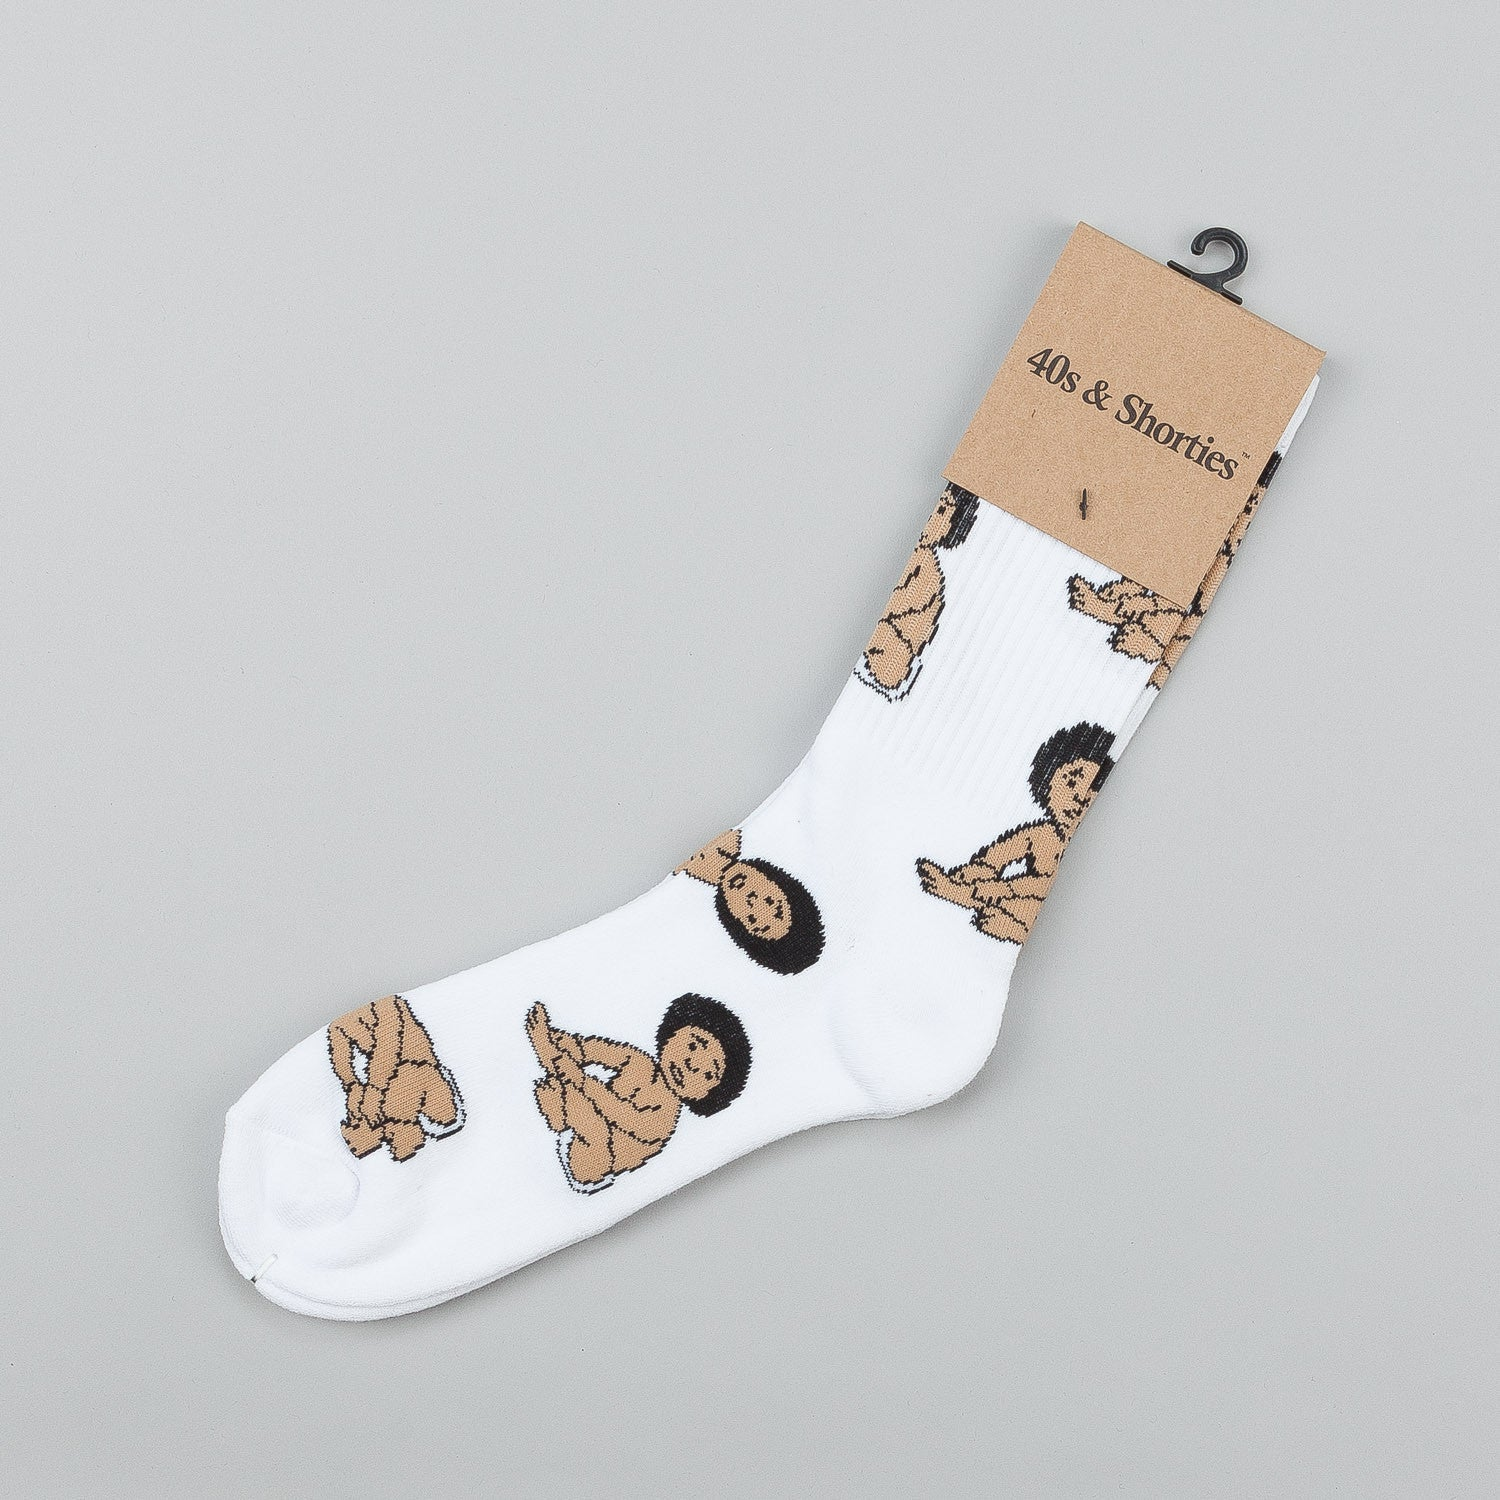 40s & Shorties Biggie Baby Socks - White